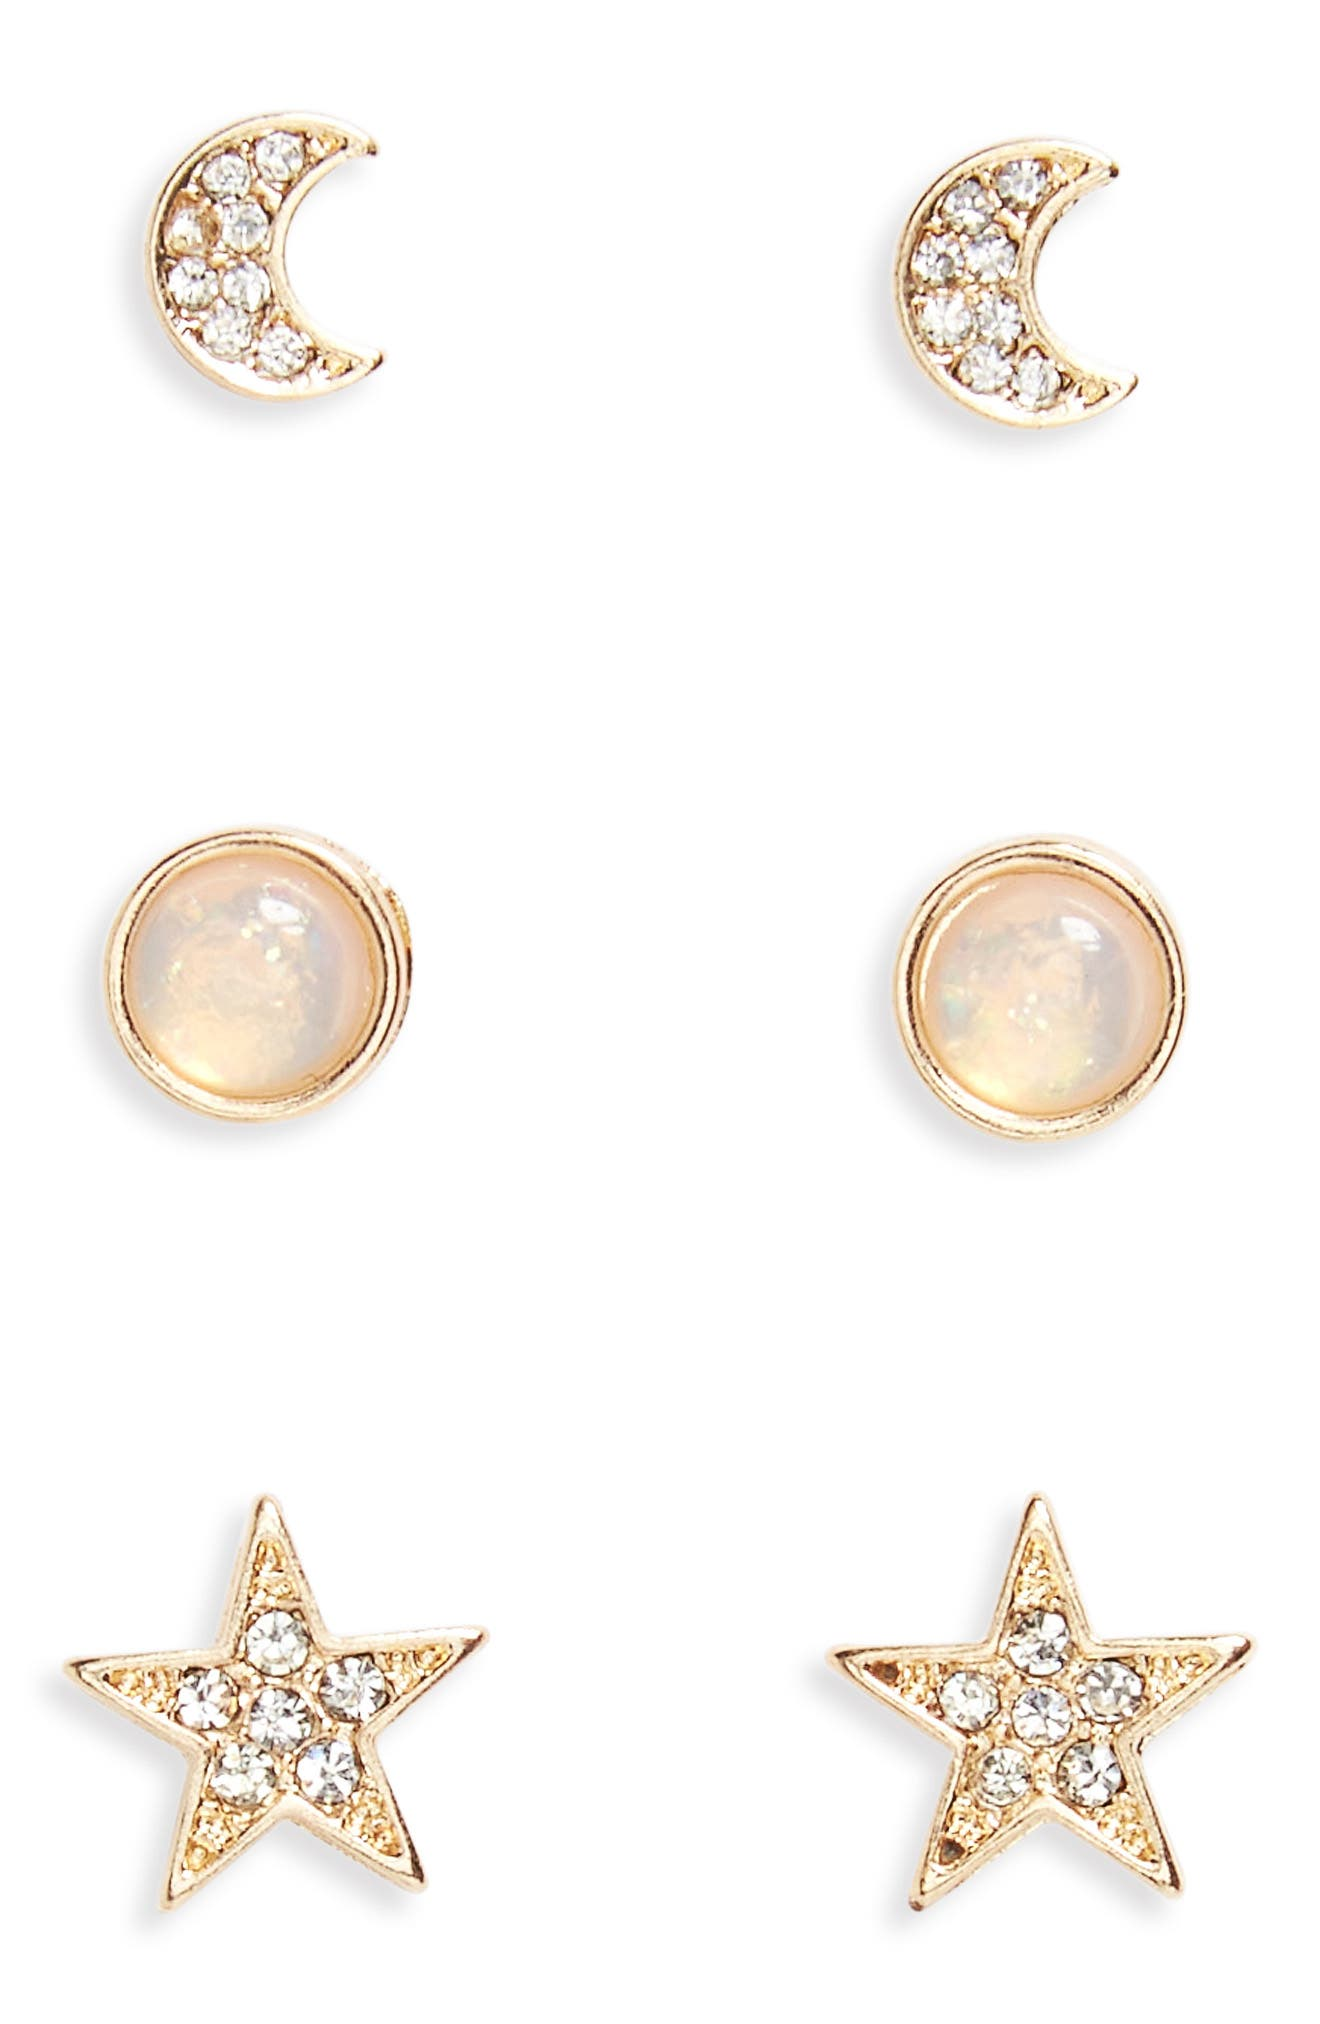 Moon, Star & Faux Opal 3-Pack Earrings,                             Main thumbnail 1, color,                             Gold